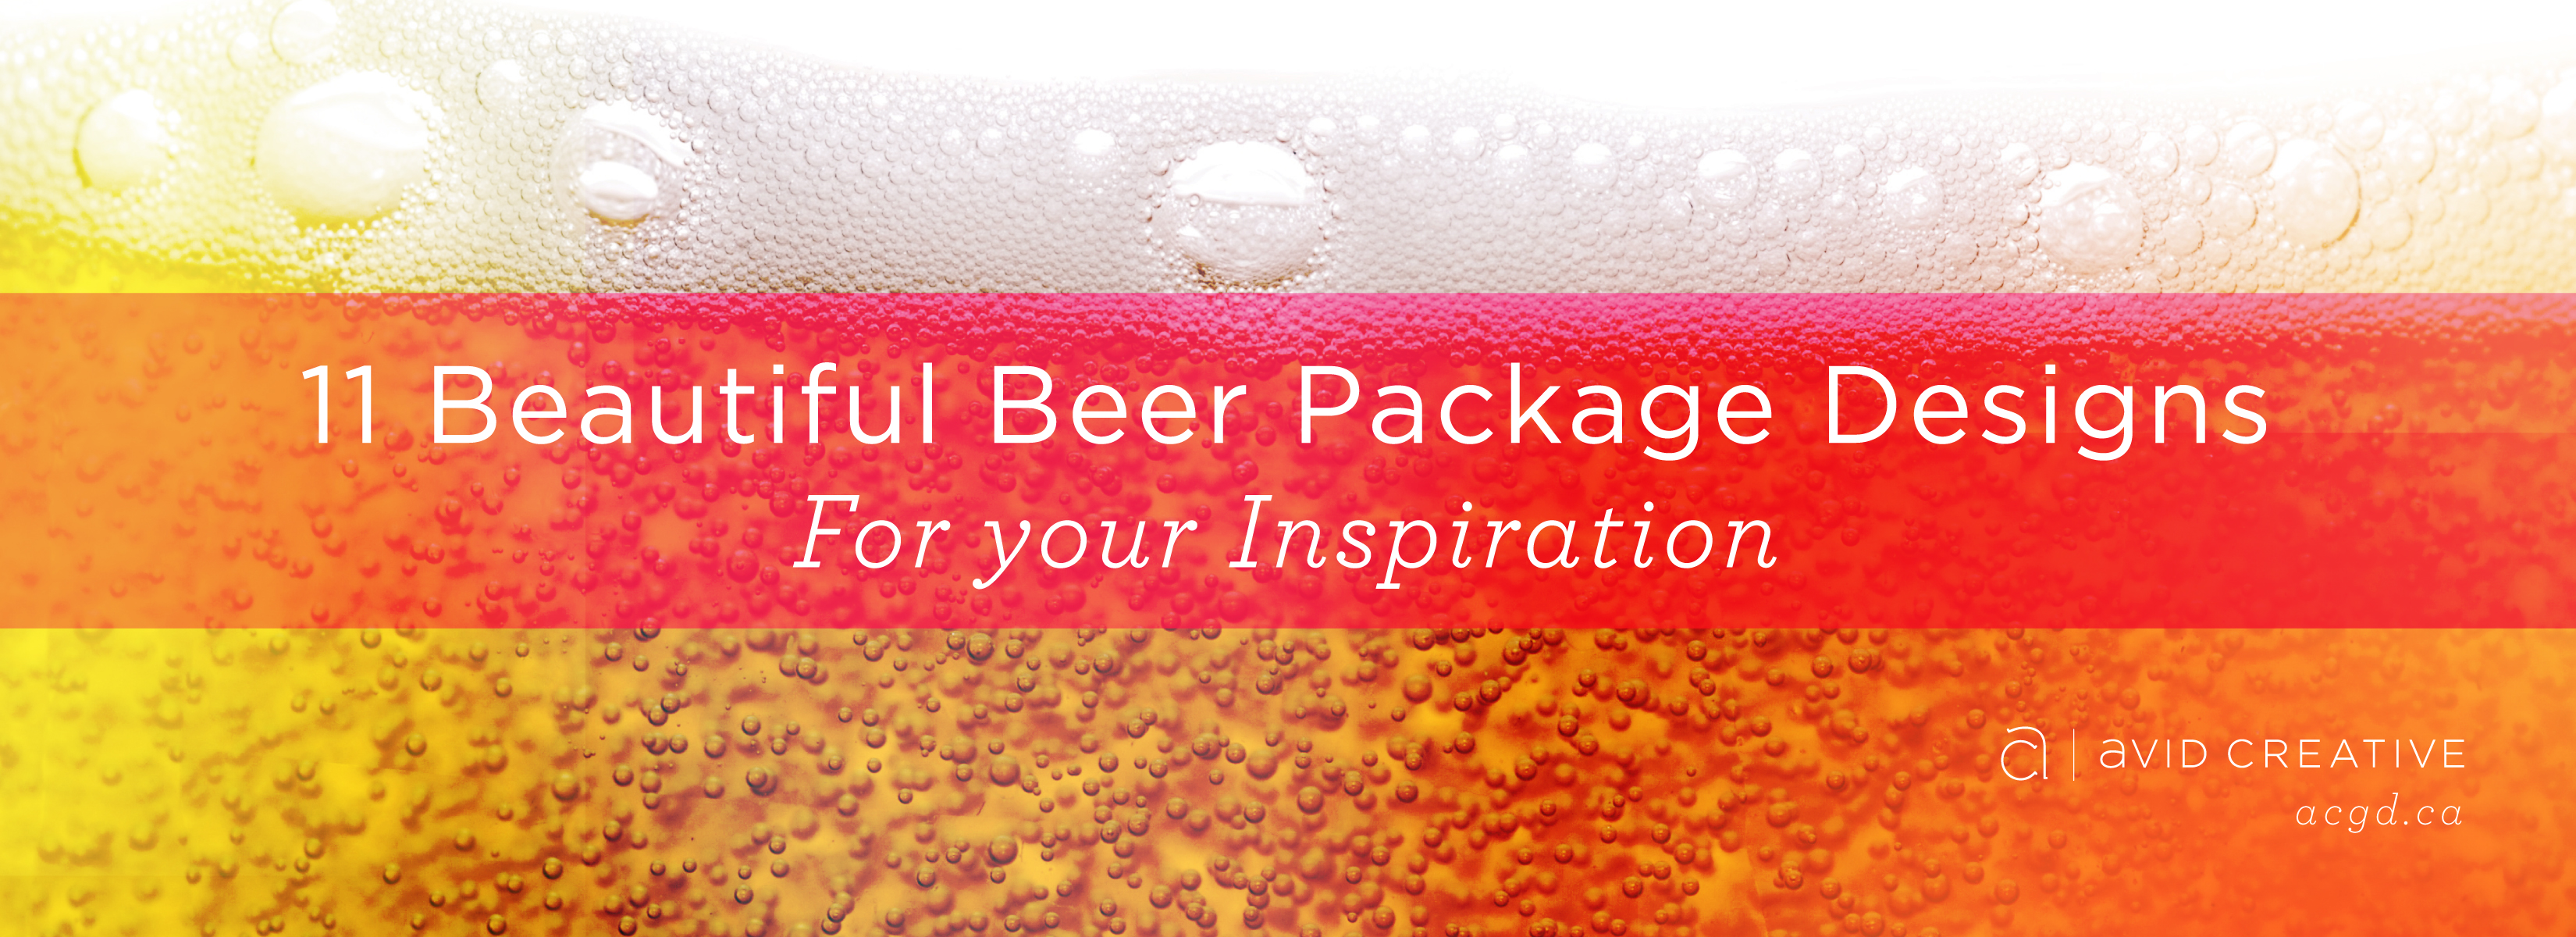 Beautiful Beer Package Design